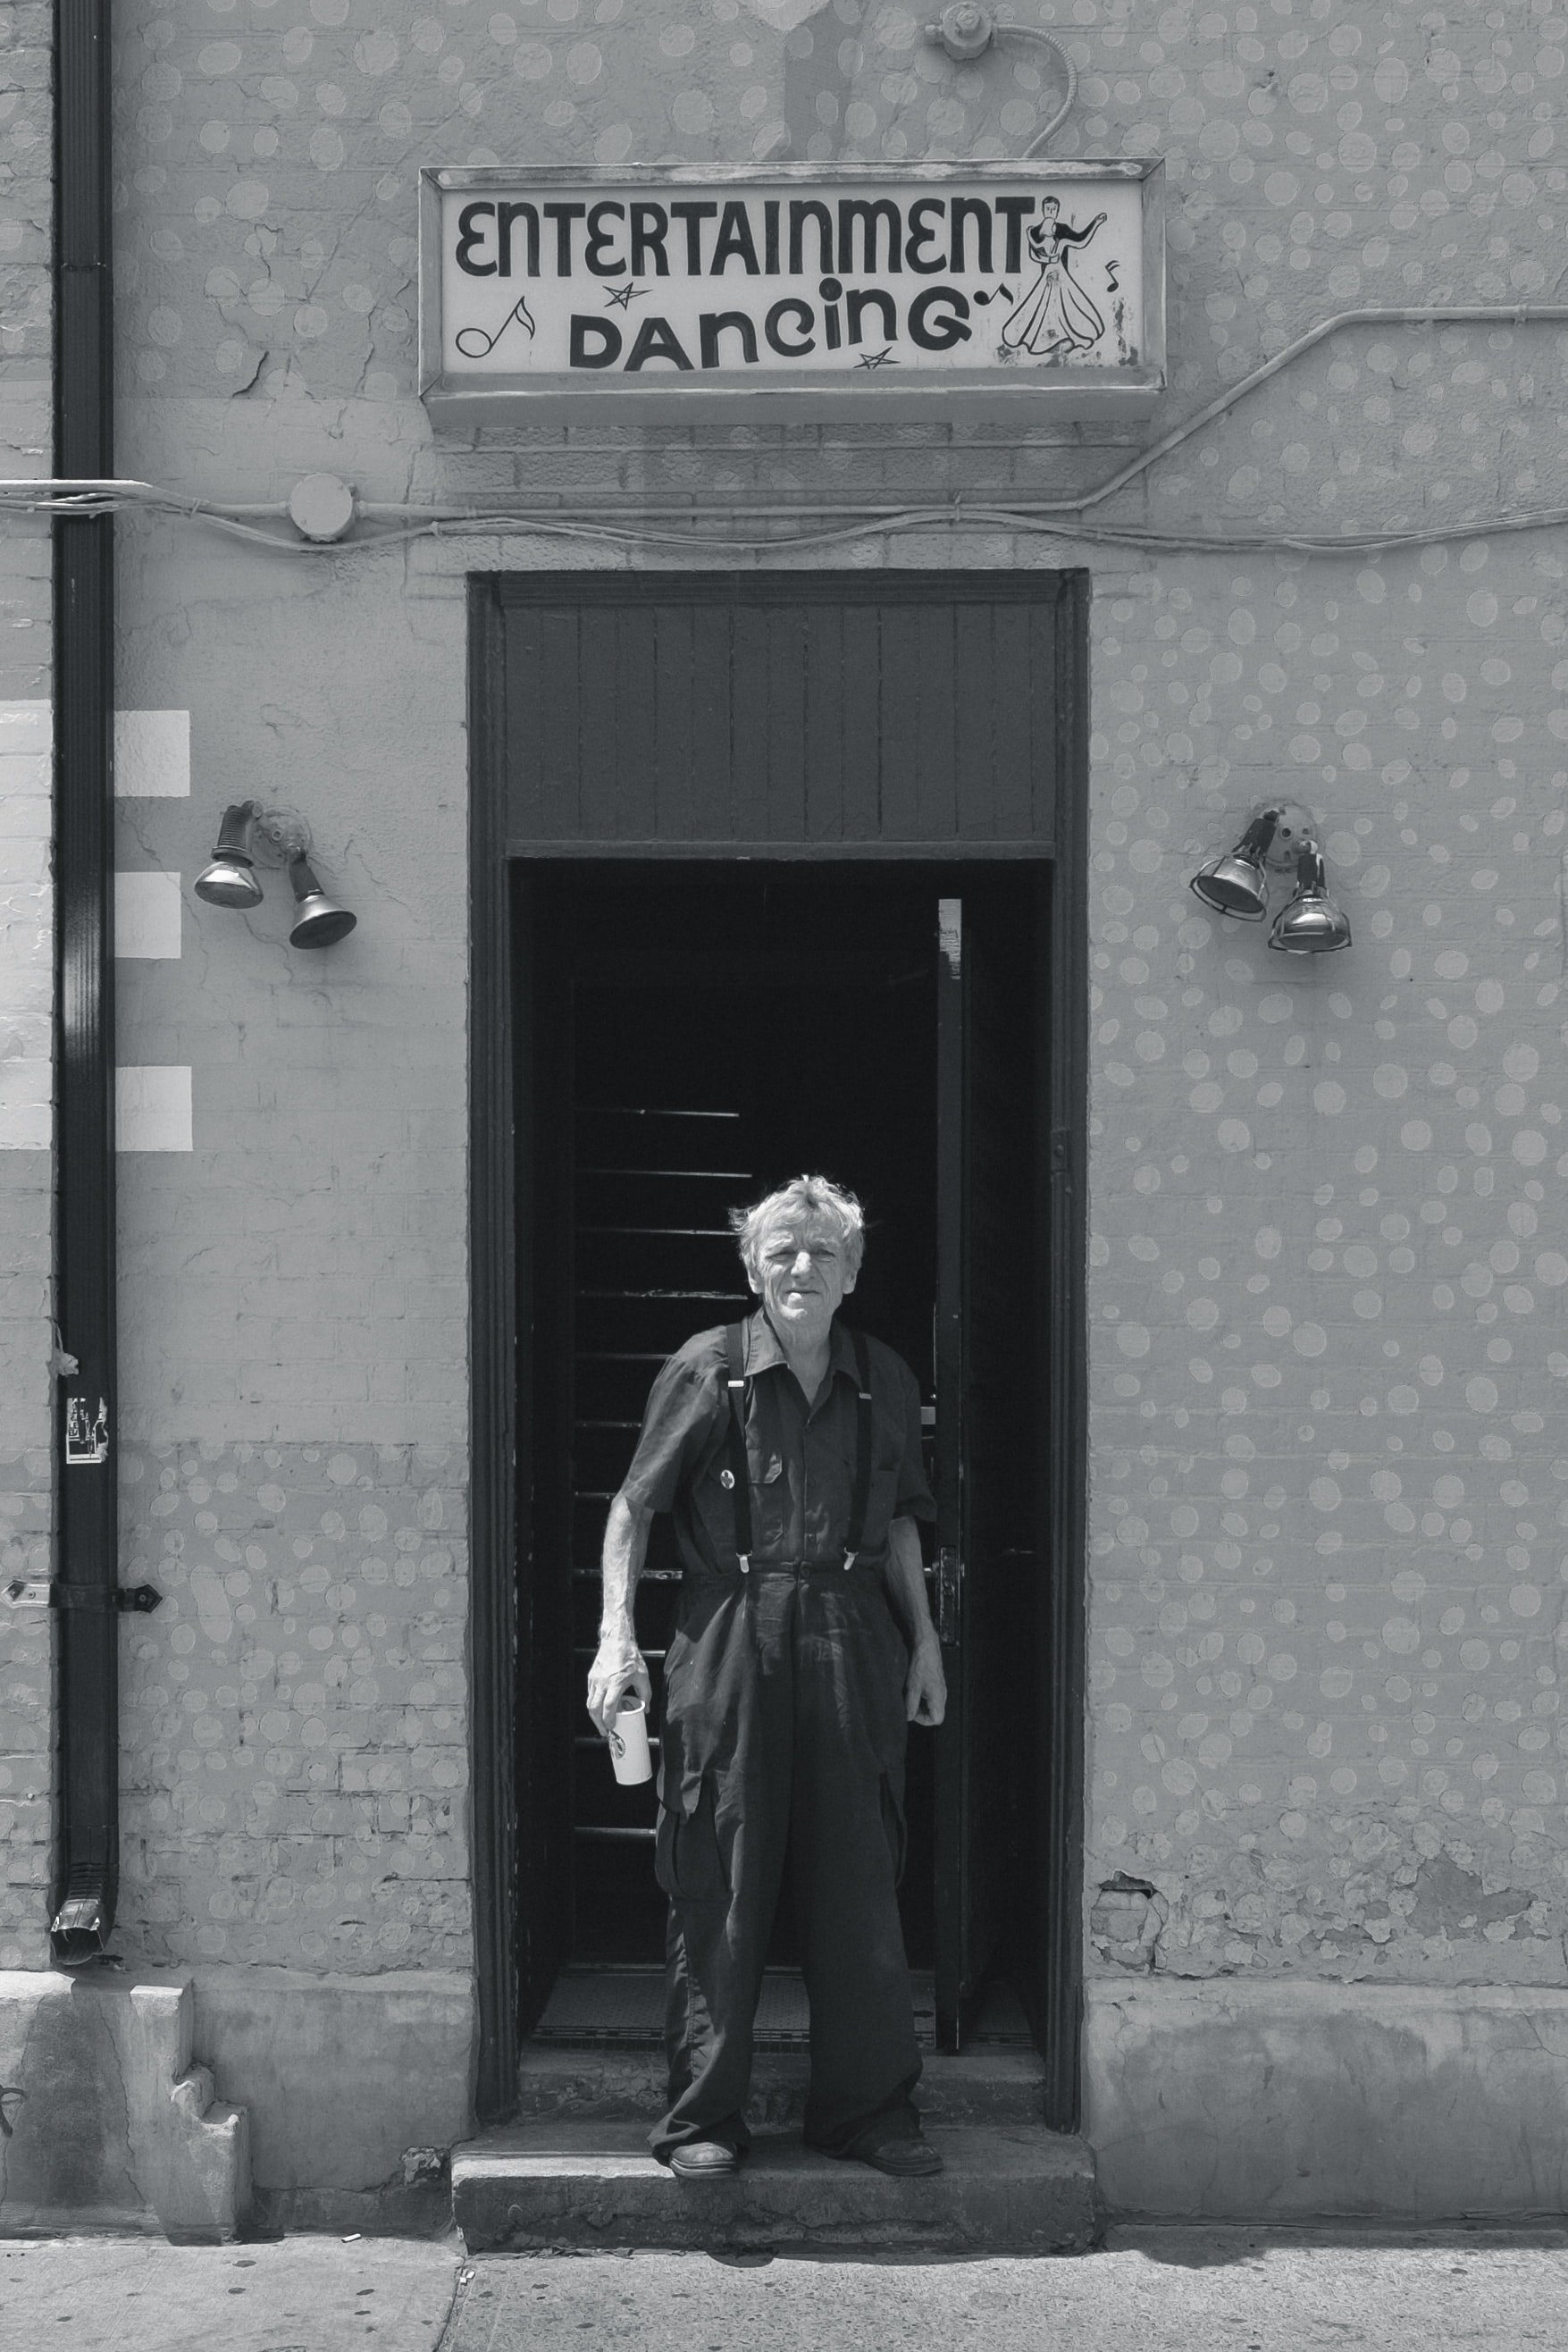 grayscale photo of man wearing collared tops and dress pants standing between concrete wall near Entertainment Dancing signage building